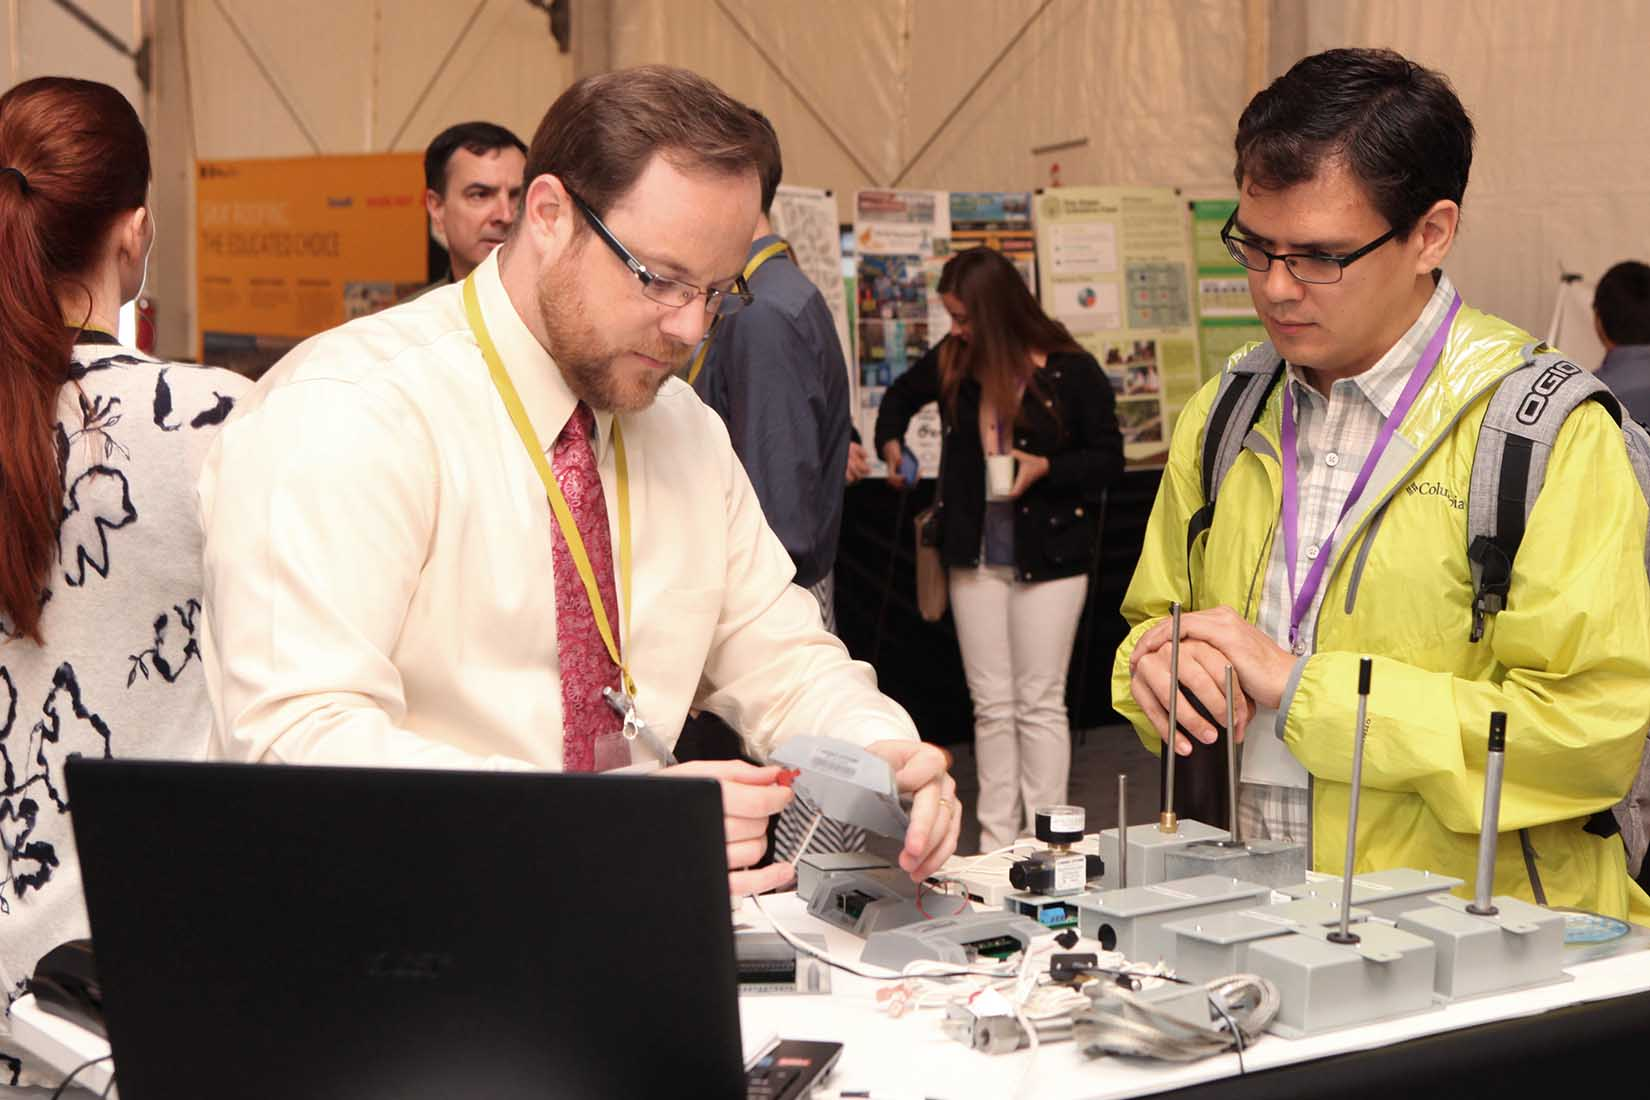 vendor shows his products to a participant of the seminar